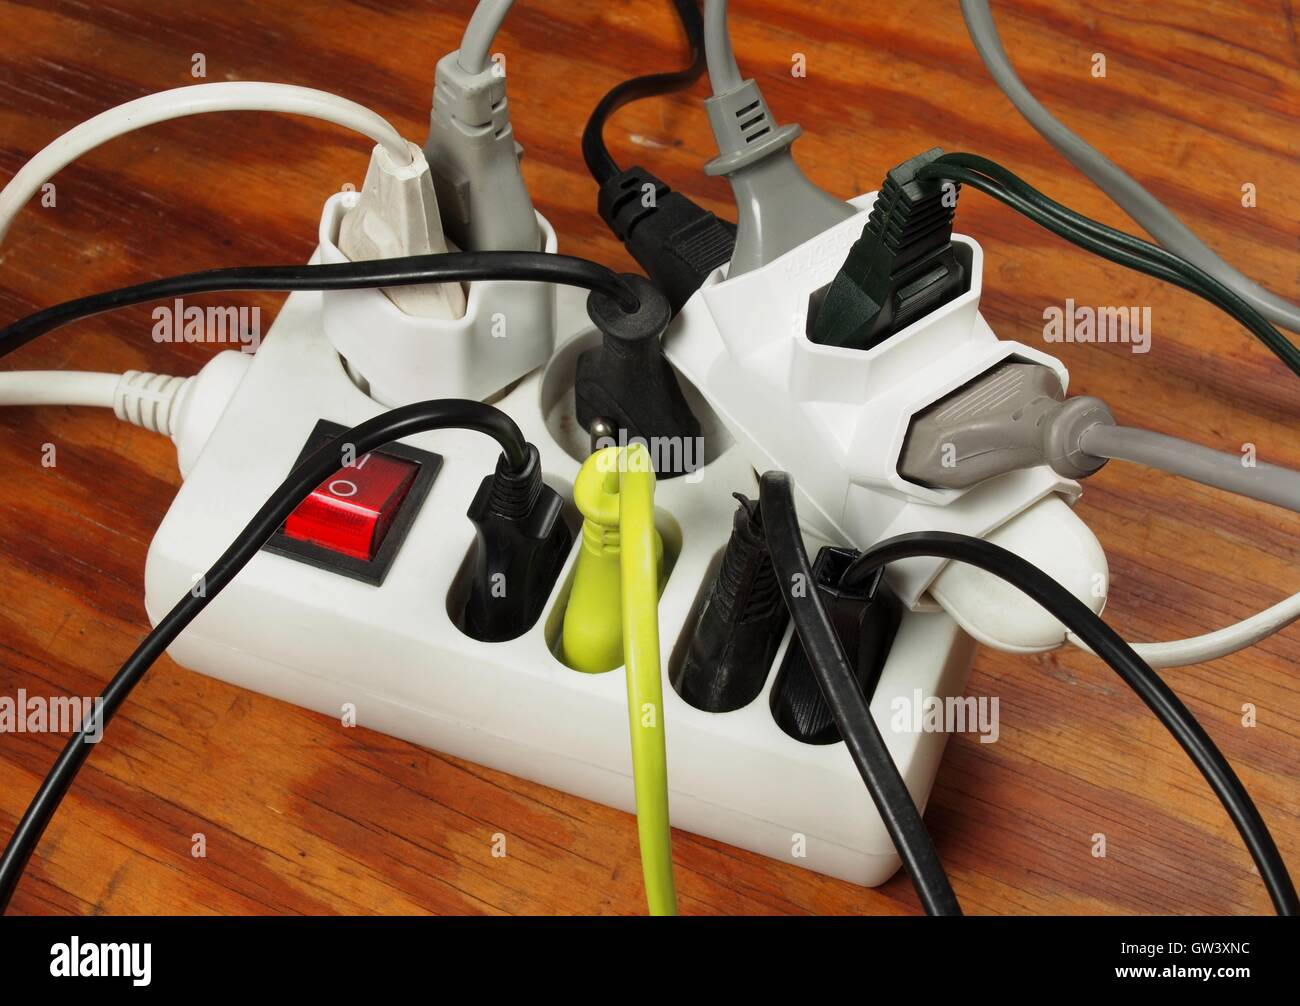 Plug Sockets Overload Stock Photos Wiring Shed Extension Cord Overloaded